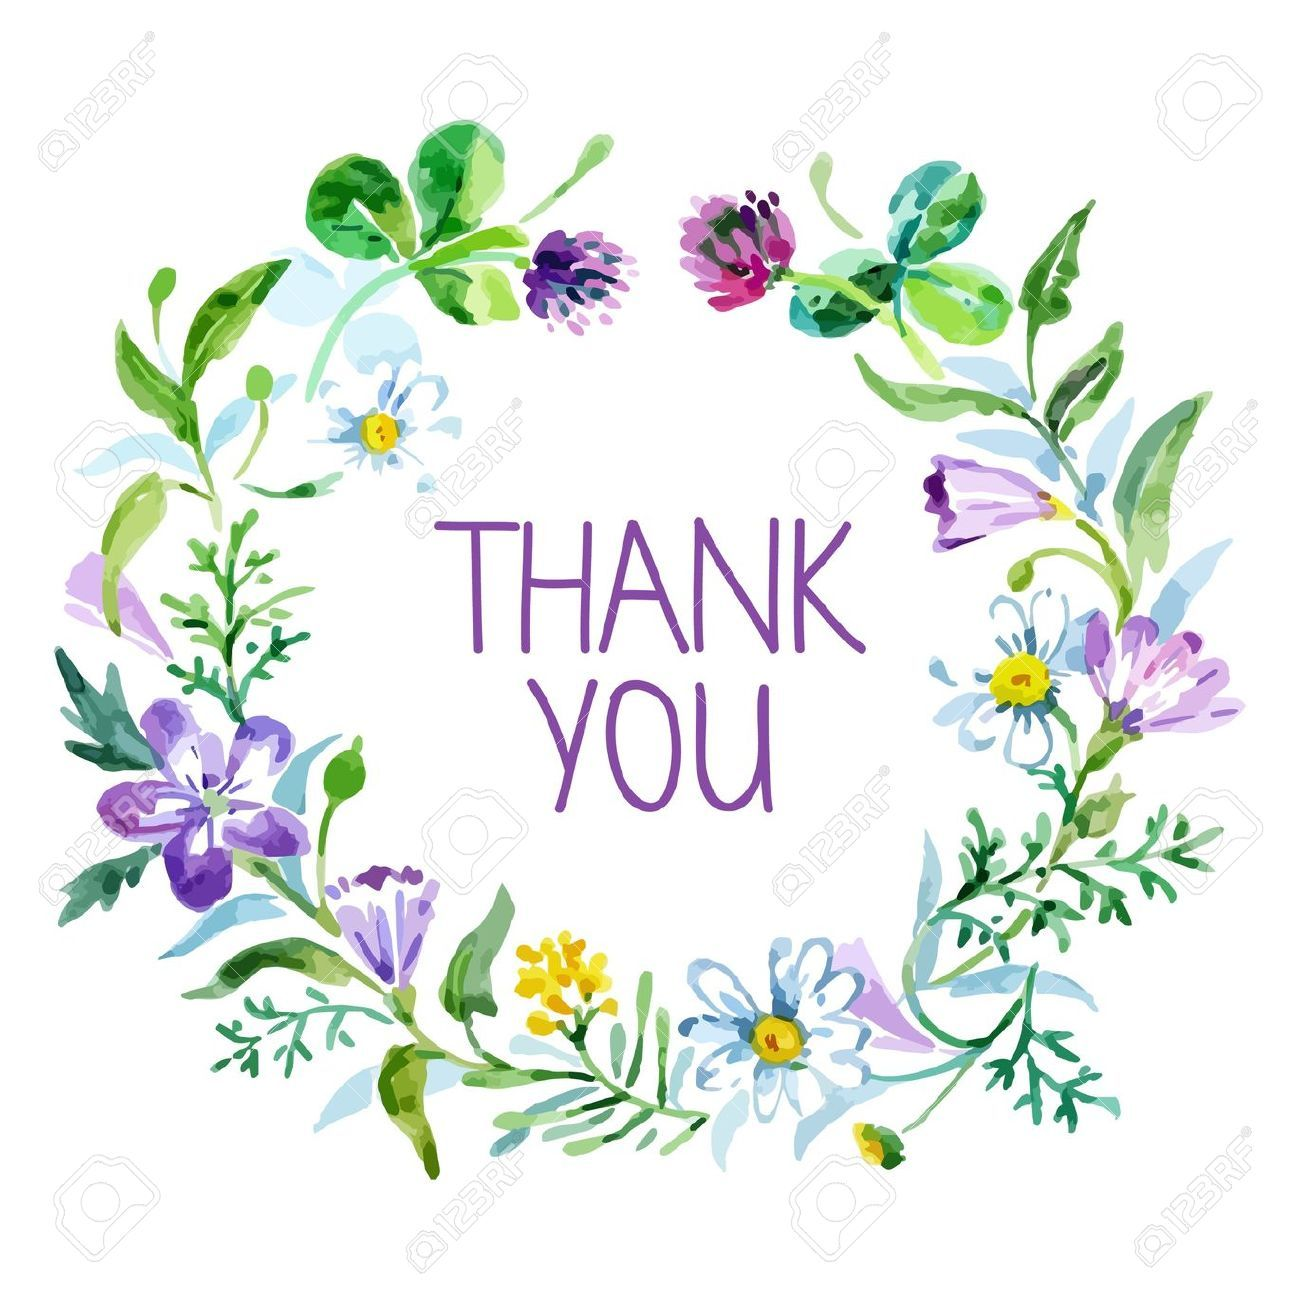 Thank You Bouquet Clipart | Nutrition | Pinterest